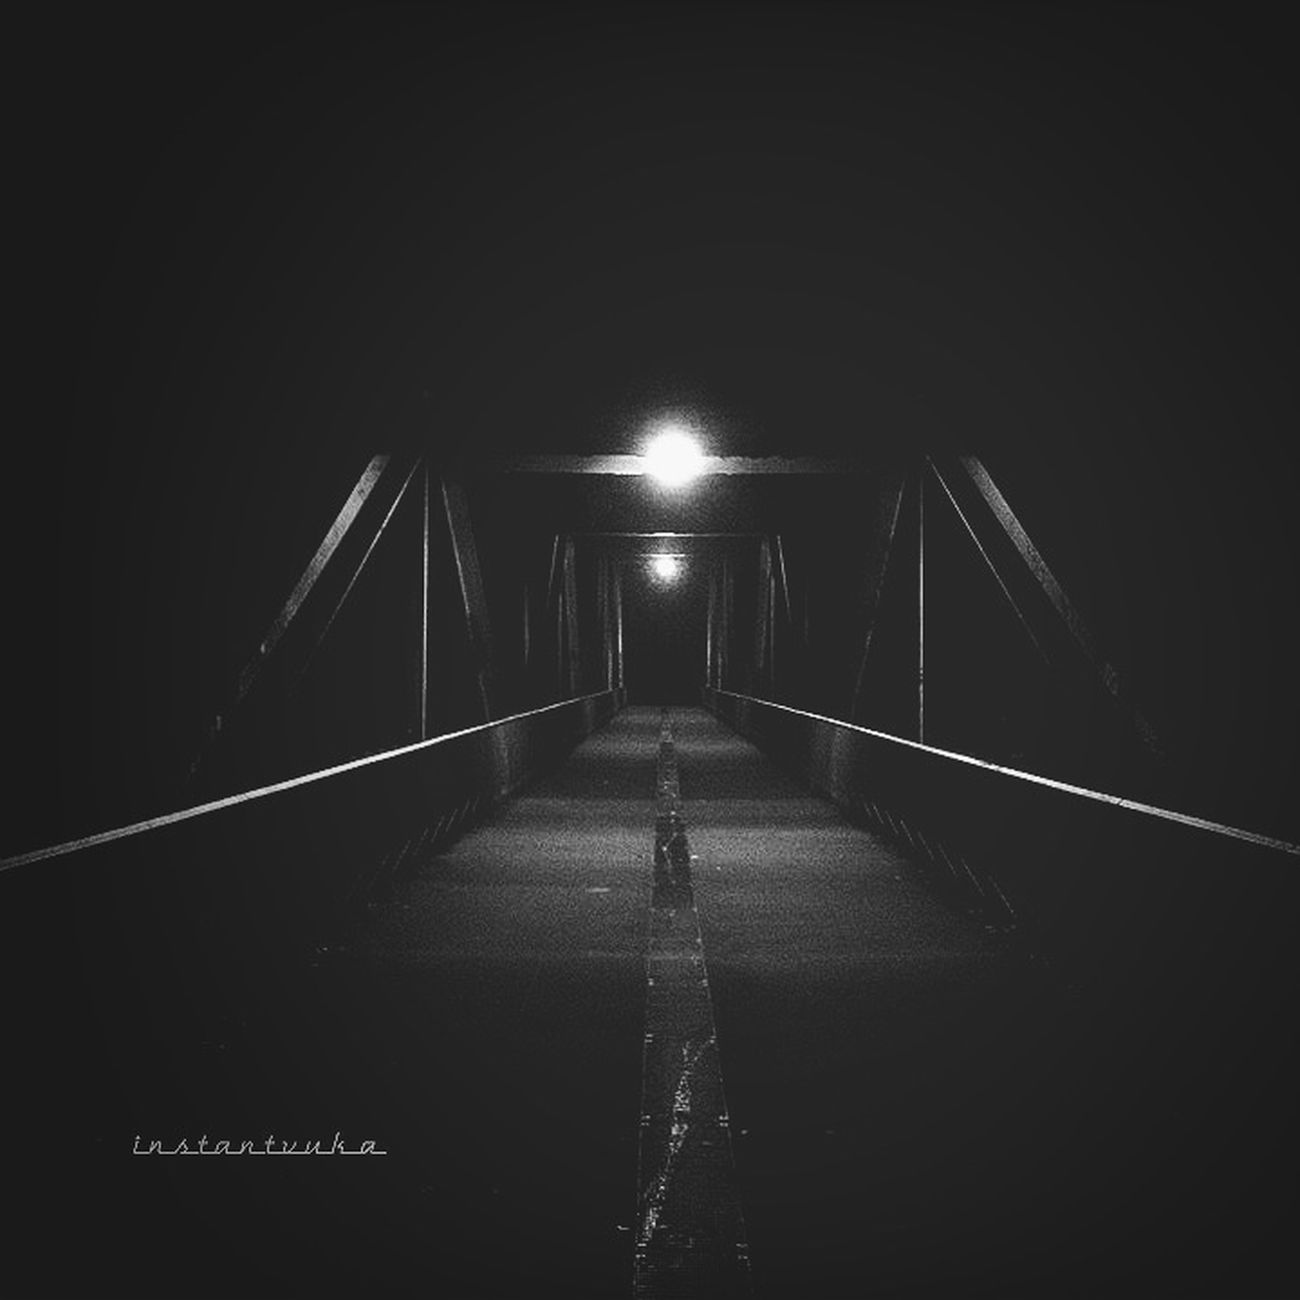 Nightwalk Journey Into The Dark The Black Hit Of Space Light And Shadow Black And White Photography